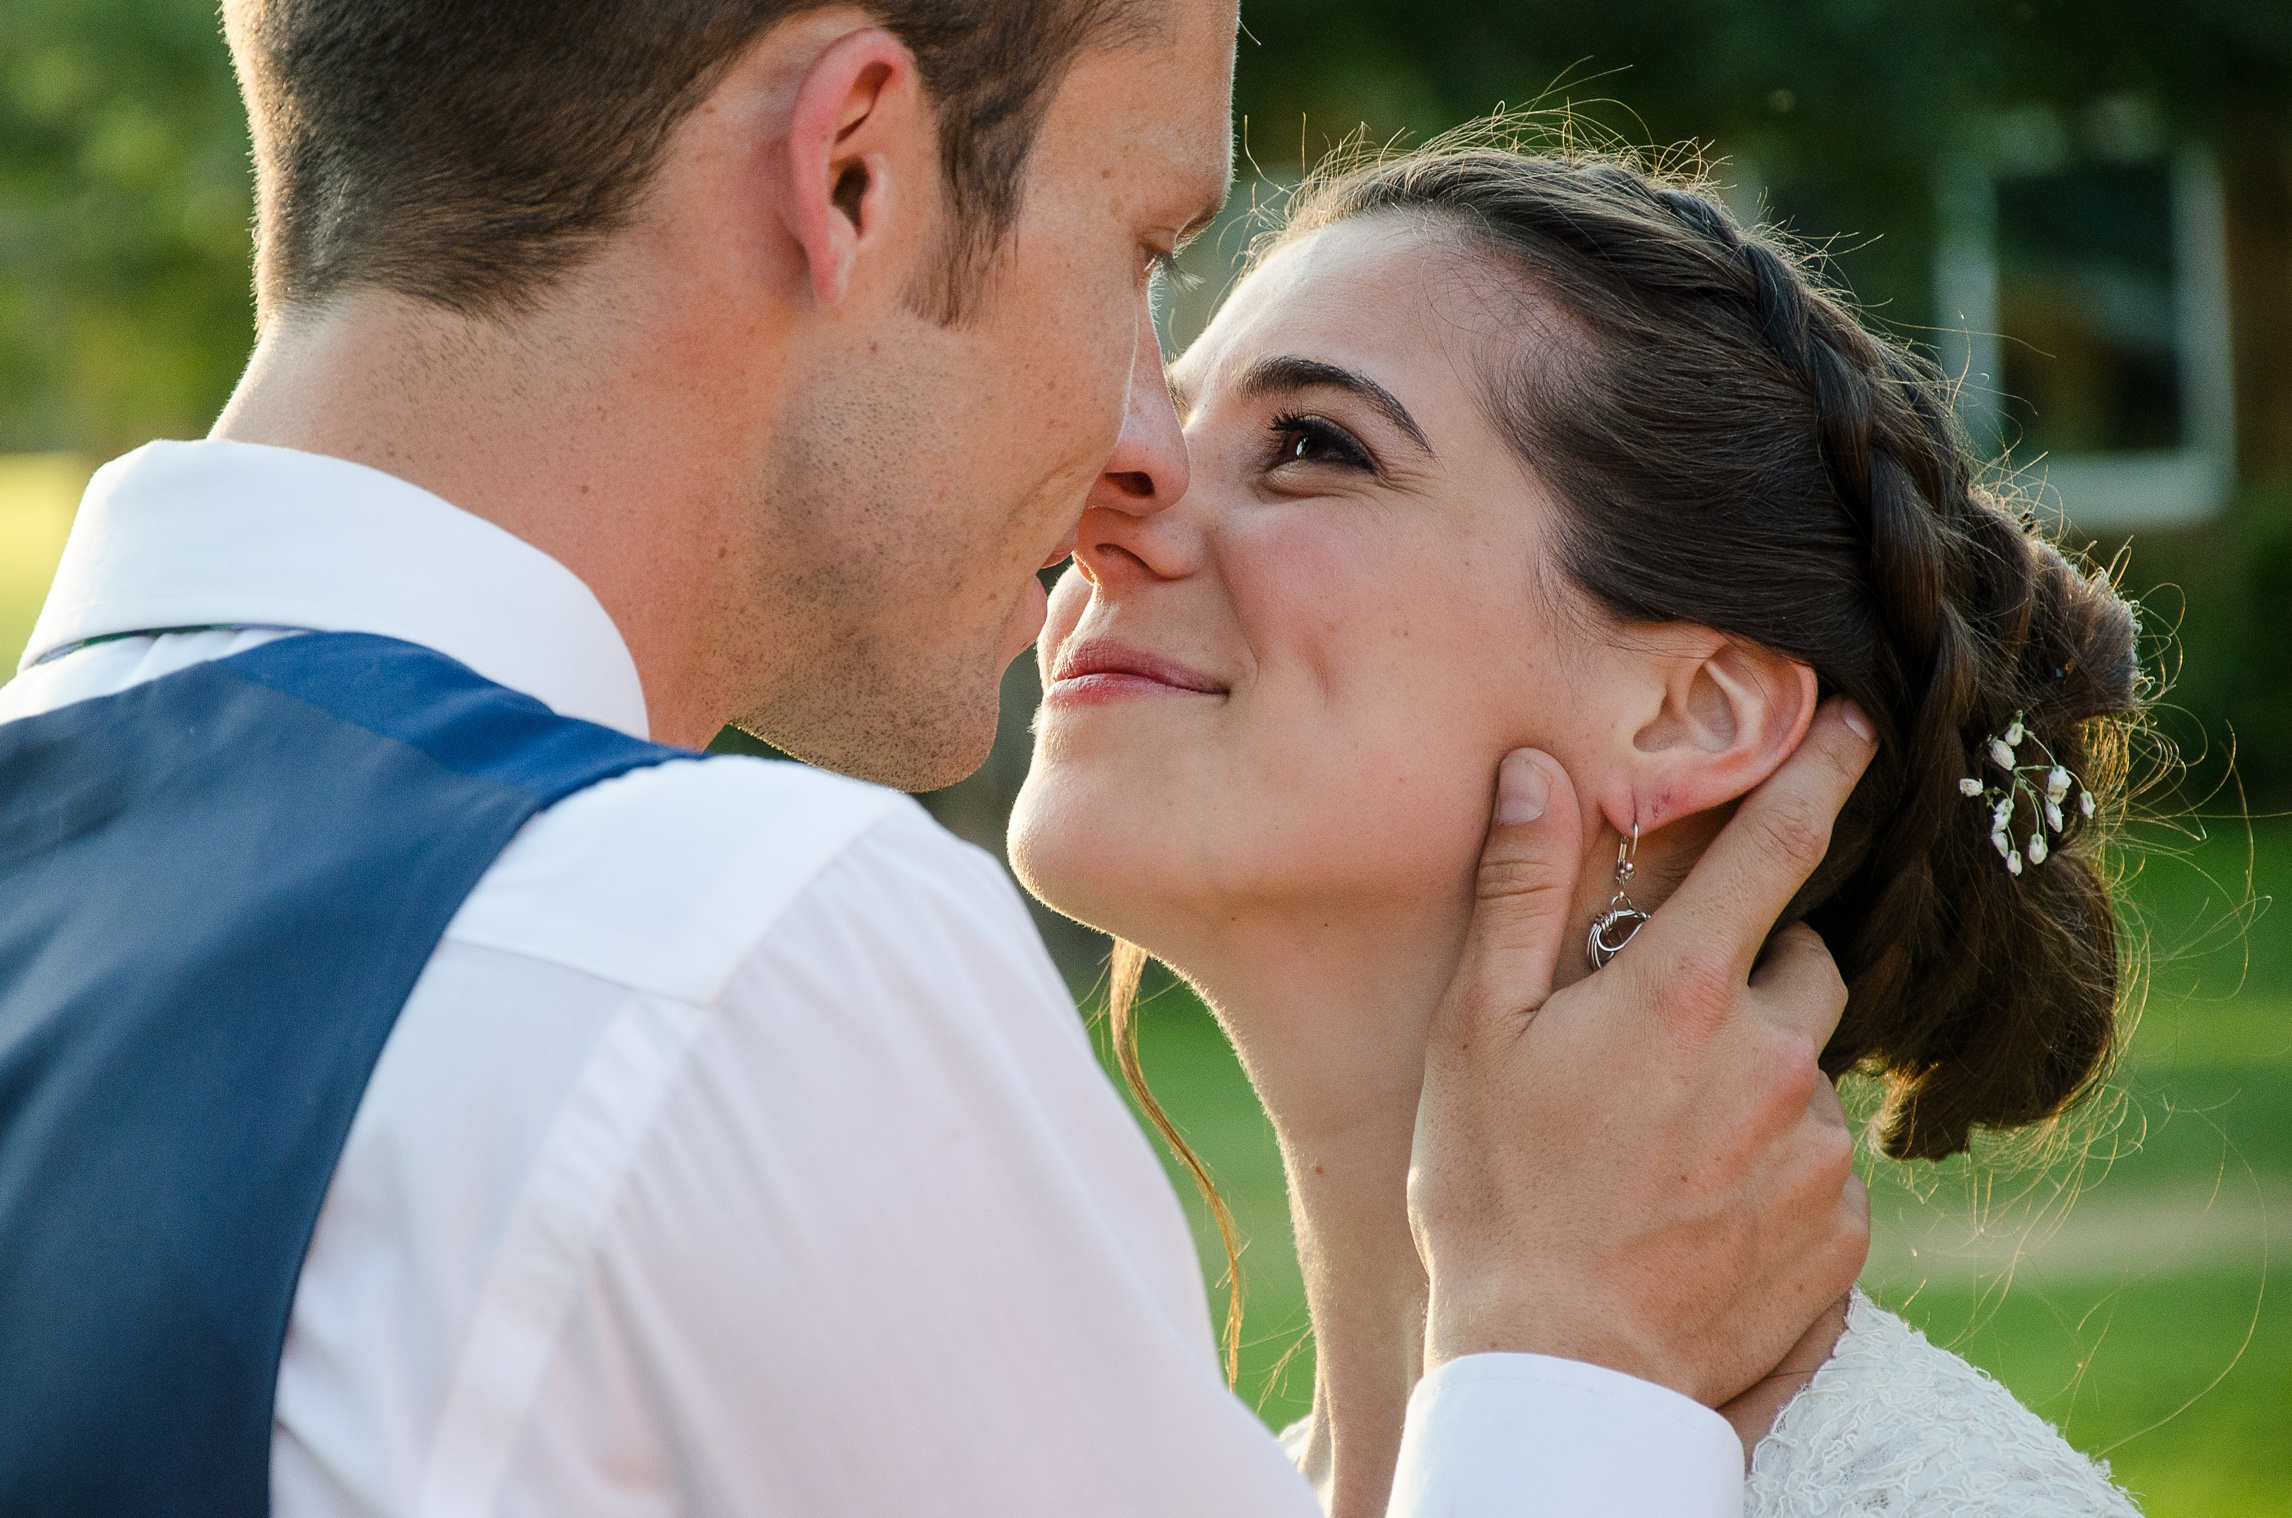 A newly married couple kiss at Planet Bluegrass in Lyons, Colorado. Wedding photography by Max Salzburg of Sonja K Photography.